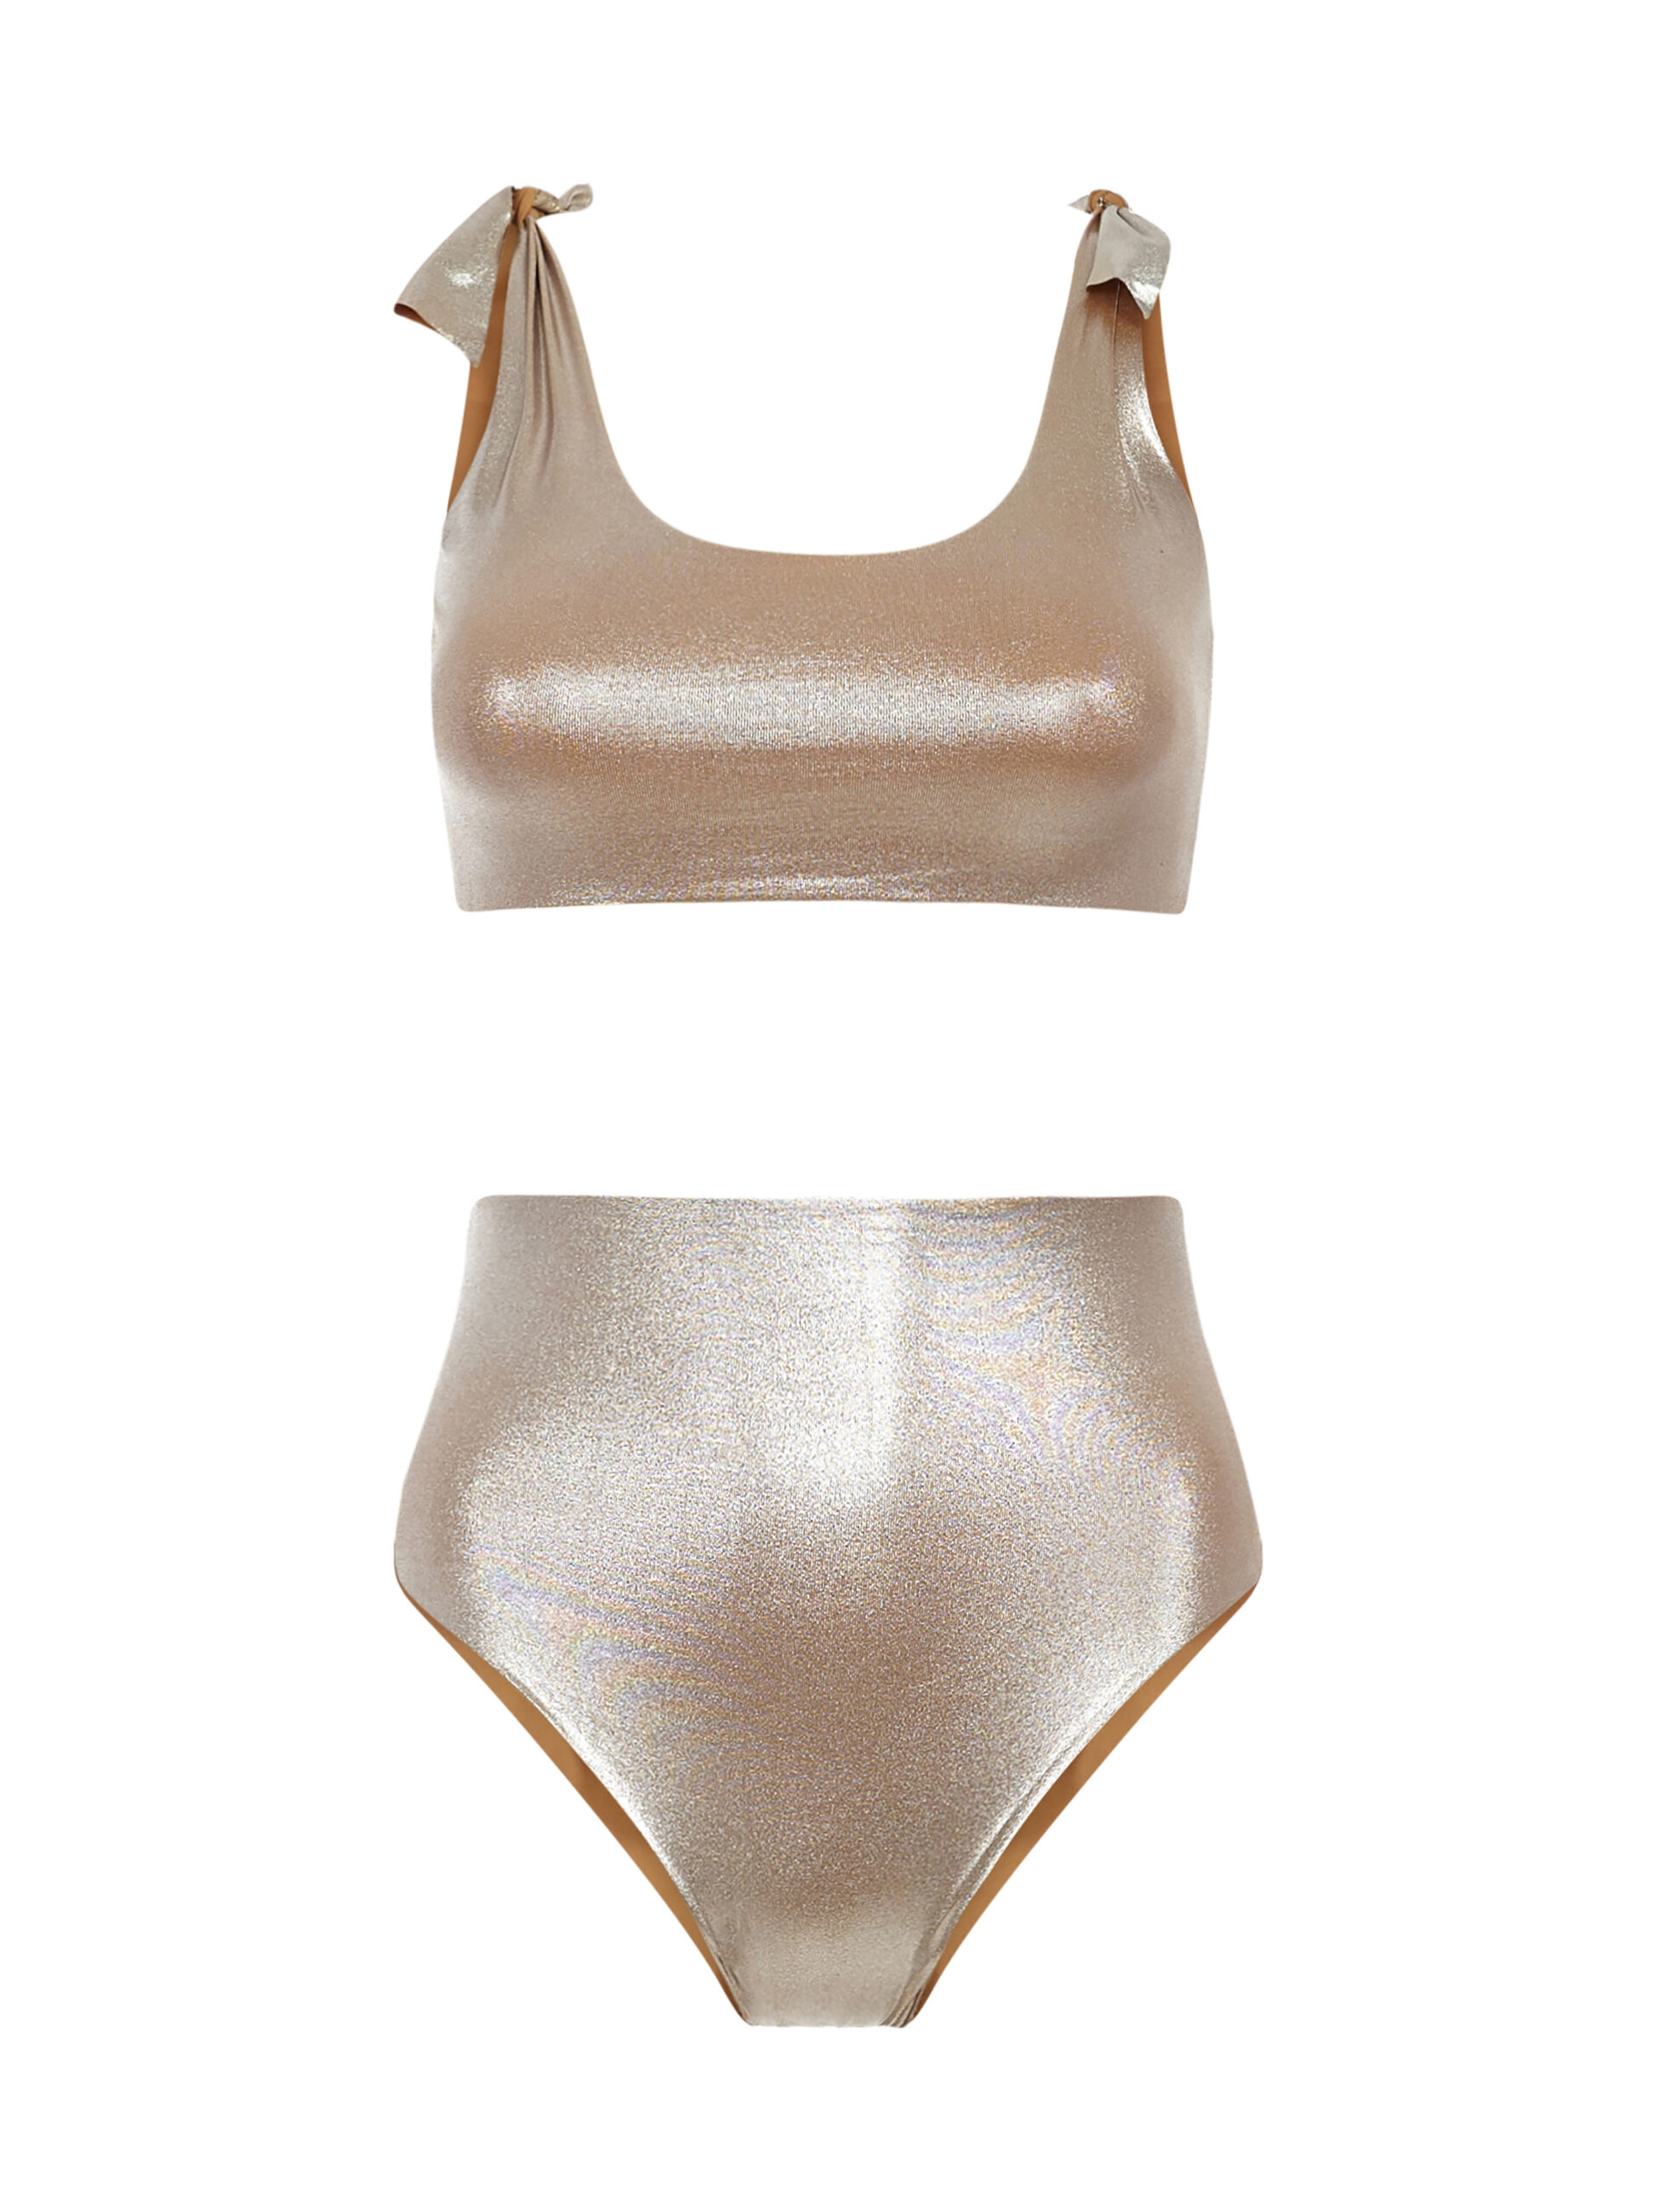 Knotting Bay High Waisted in Platinum